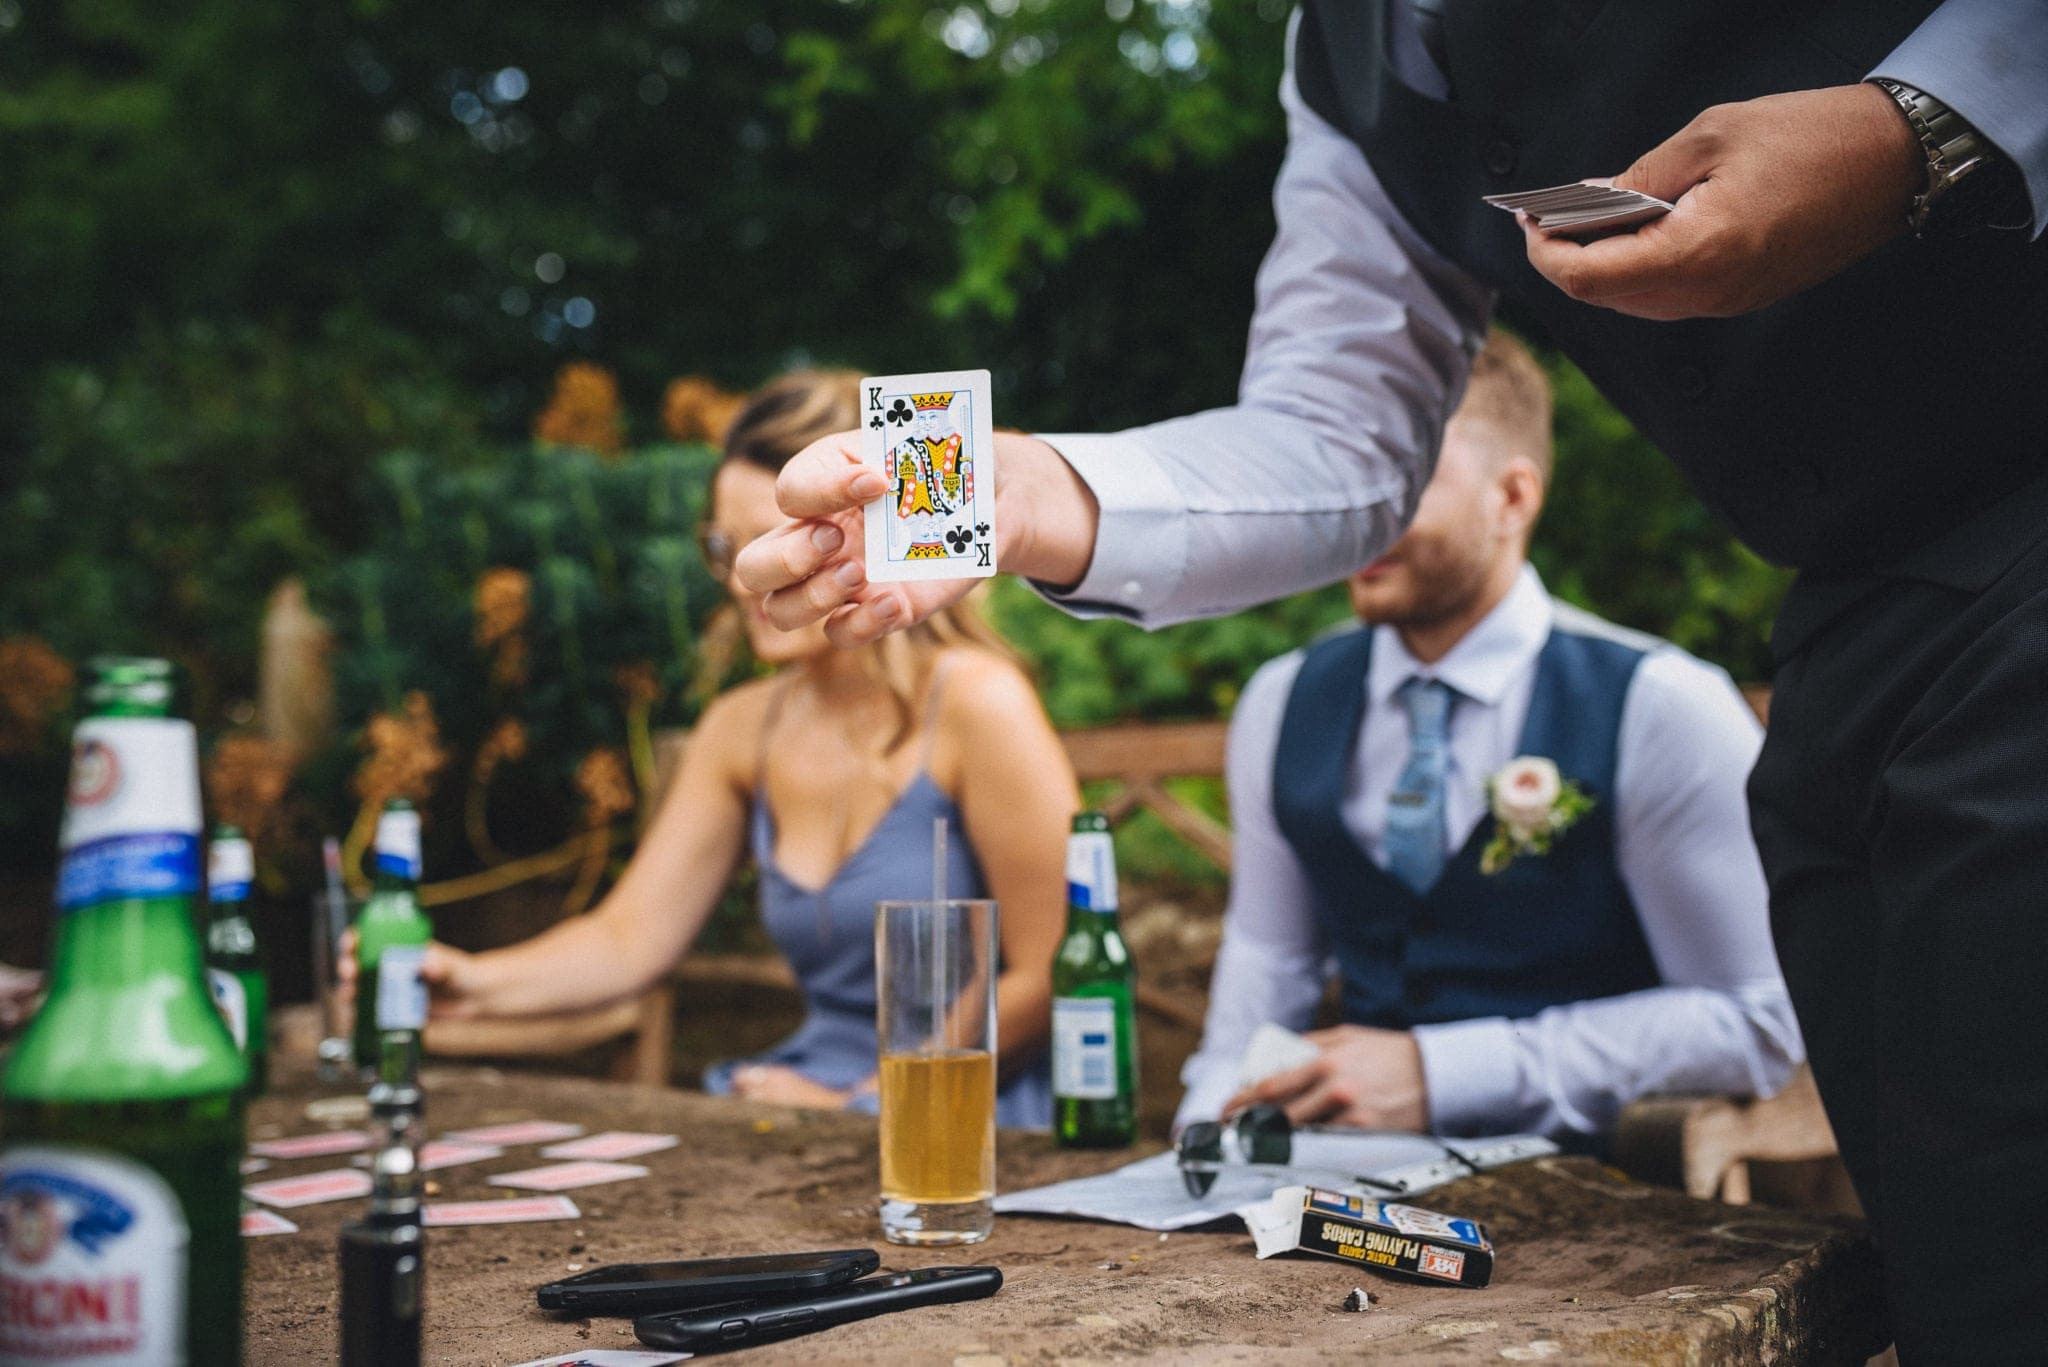 King of clubs shown during drinking game at Dewsall Court wedding